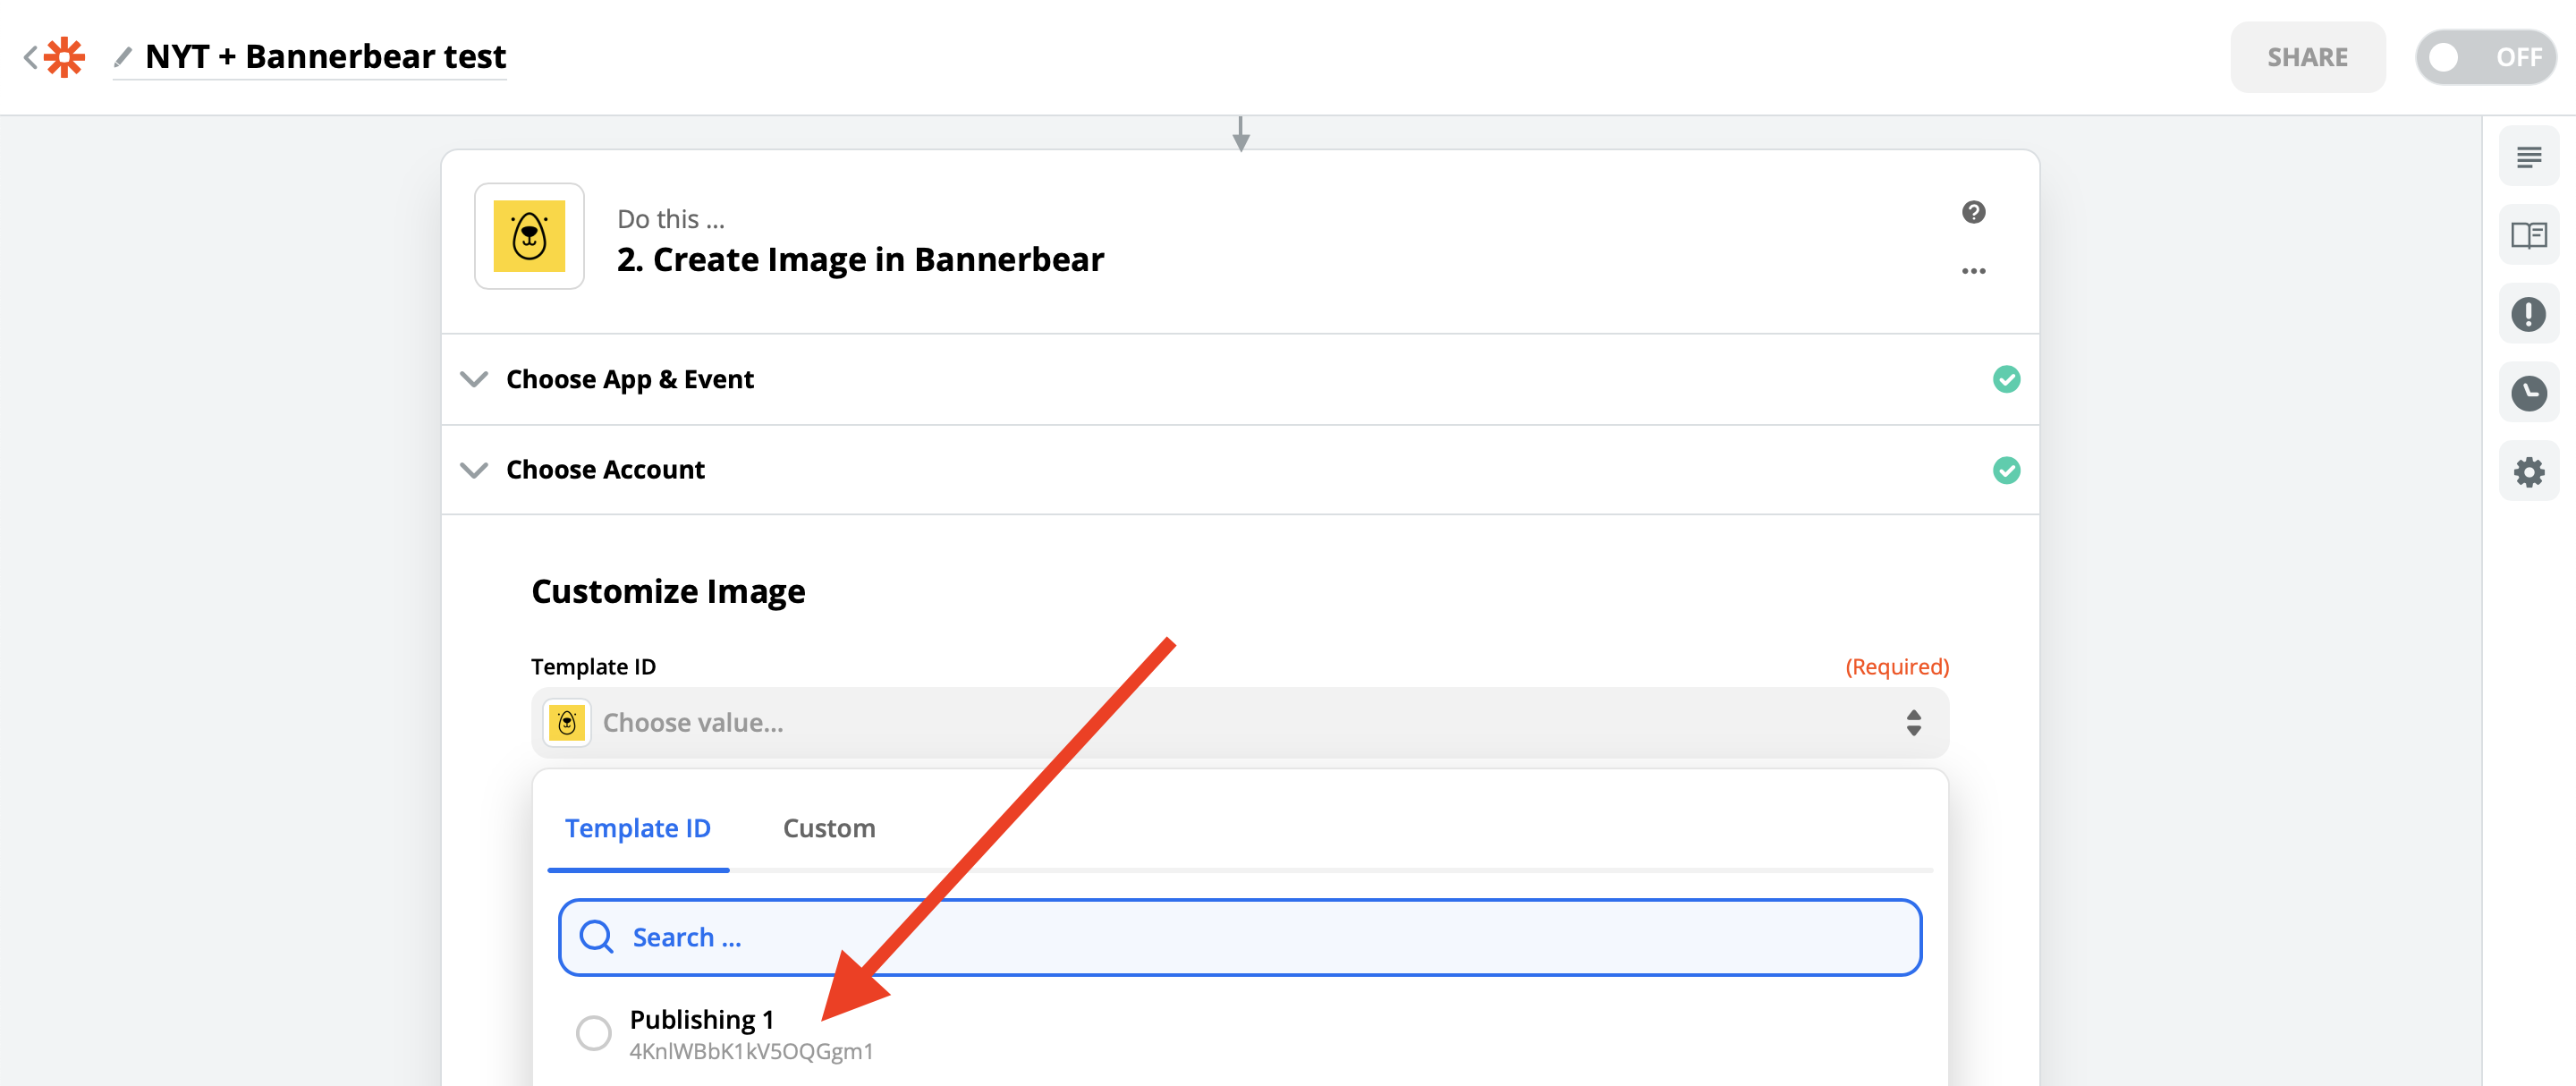 ></div></figure><p>Next, Zapier will load all of the template layers that you can manipulate.</p><p>Earlier I mentioned that this template is pretty simple and there's really only 3 things we want to manipulate:</p><ul><li>Background image</li><li>Abstract</li><li>Title</li></ul><p>Here's how to do that:</p><ol><li>Connect template <strong>Background Image URL</strong> to the Formatter <strong>Output</strong></li><li>Connect template <strong>Abstract Text</strong> to the NYT <strong>Abstract</strong></li><li>Connect template <strong>Title Text</strong> to the NYT <strong>Title</strong></li></ol><figure class=